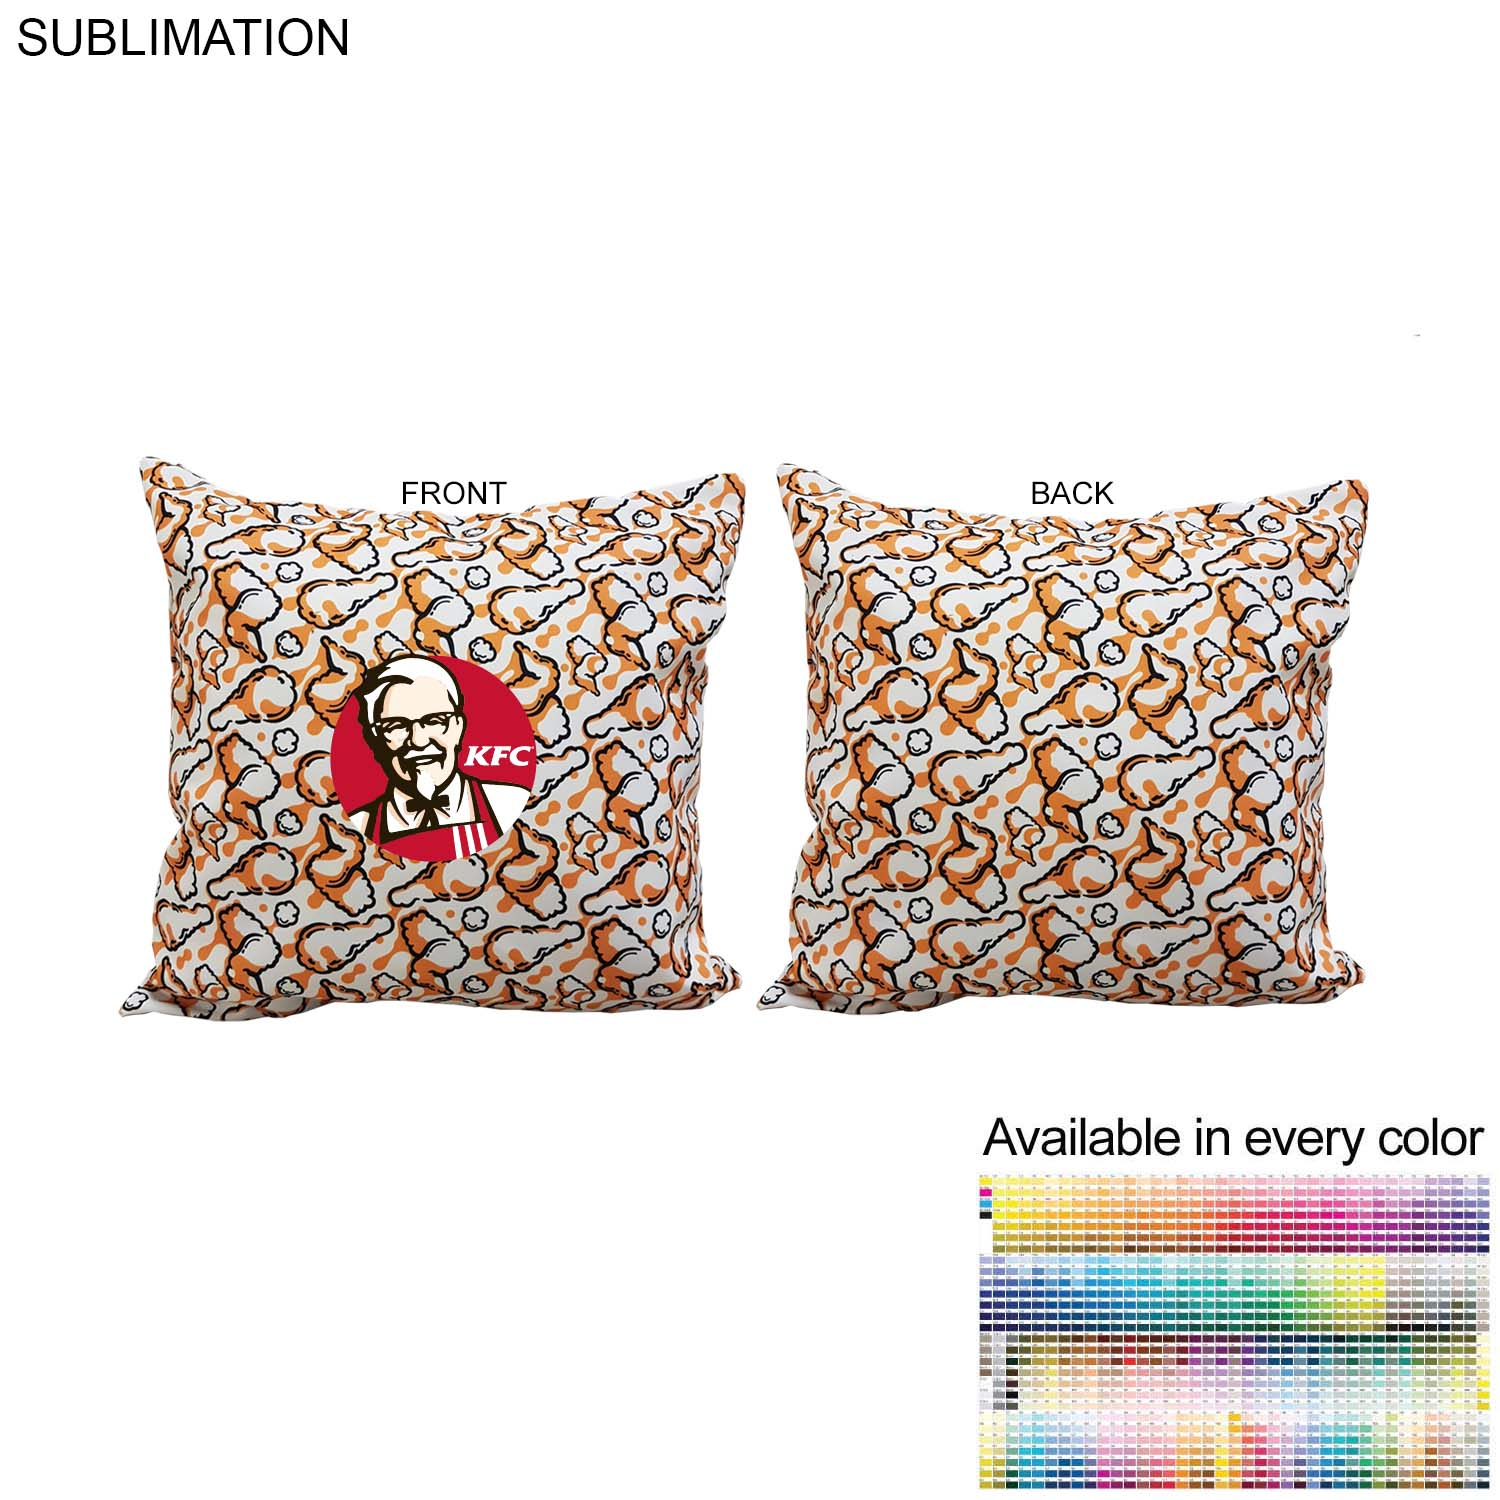 Sublimated Polyester Large Throw Cushion, 18x18 - Full Colour Imprint (#SU570)